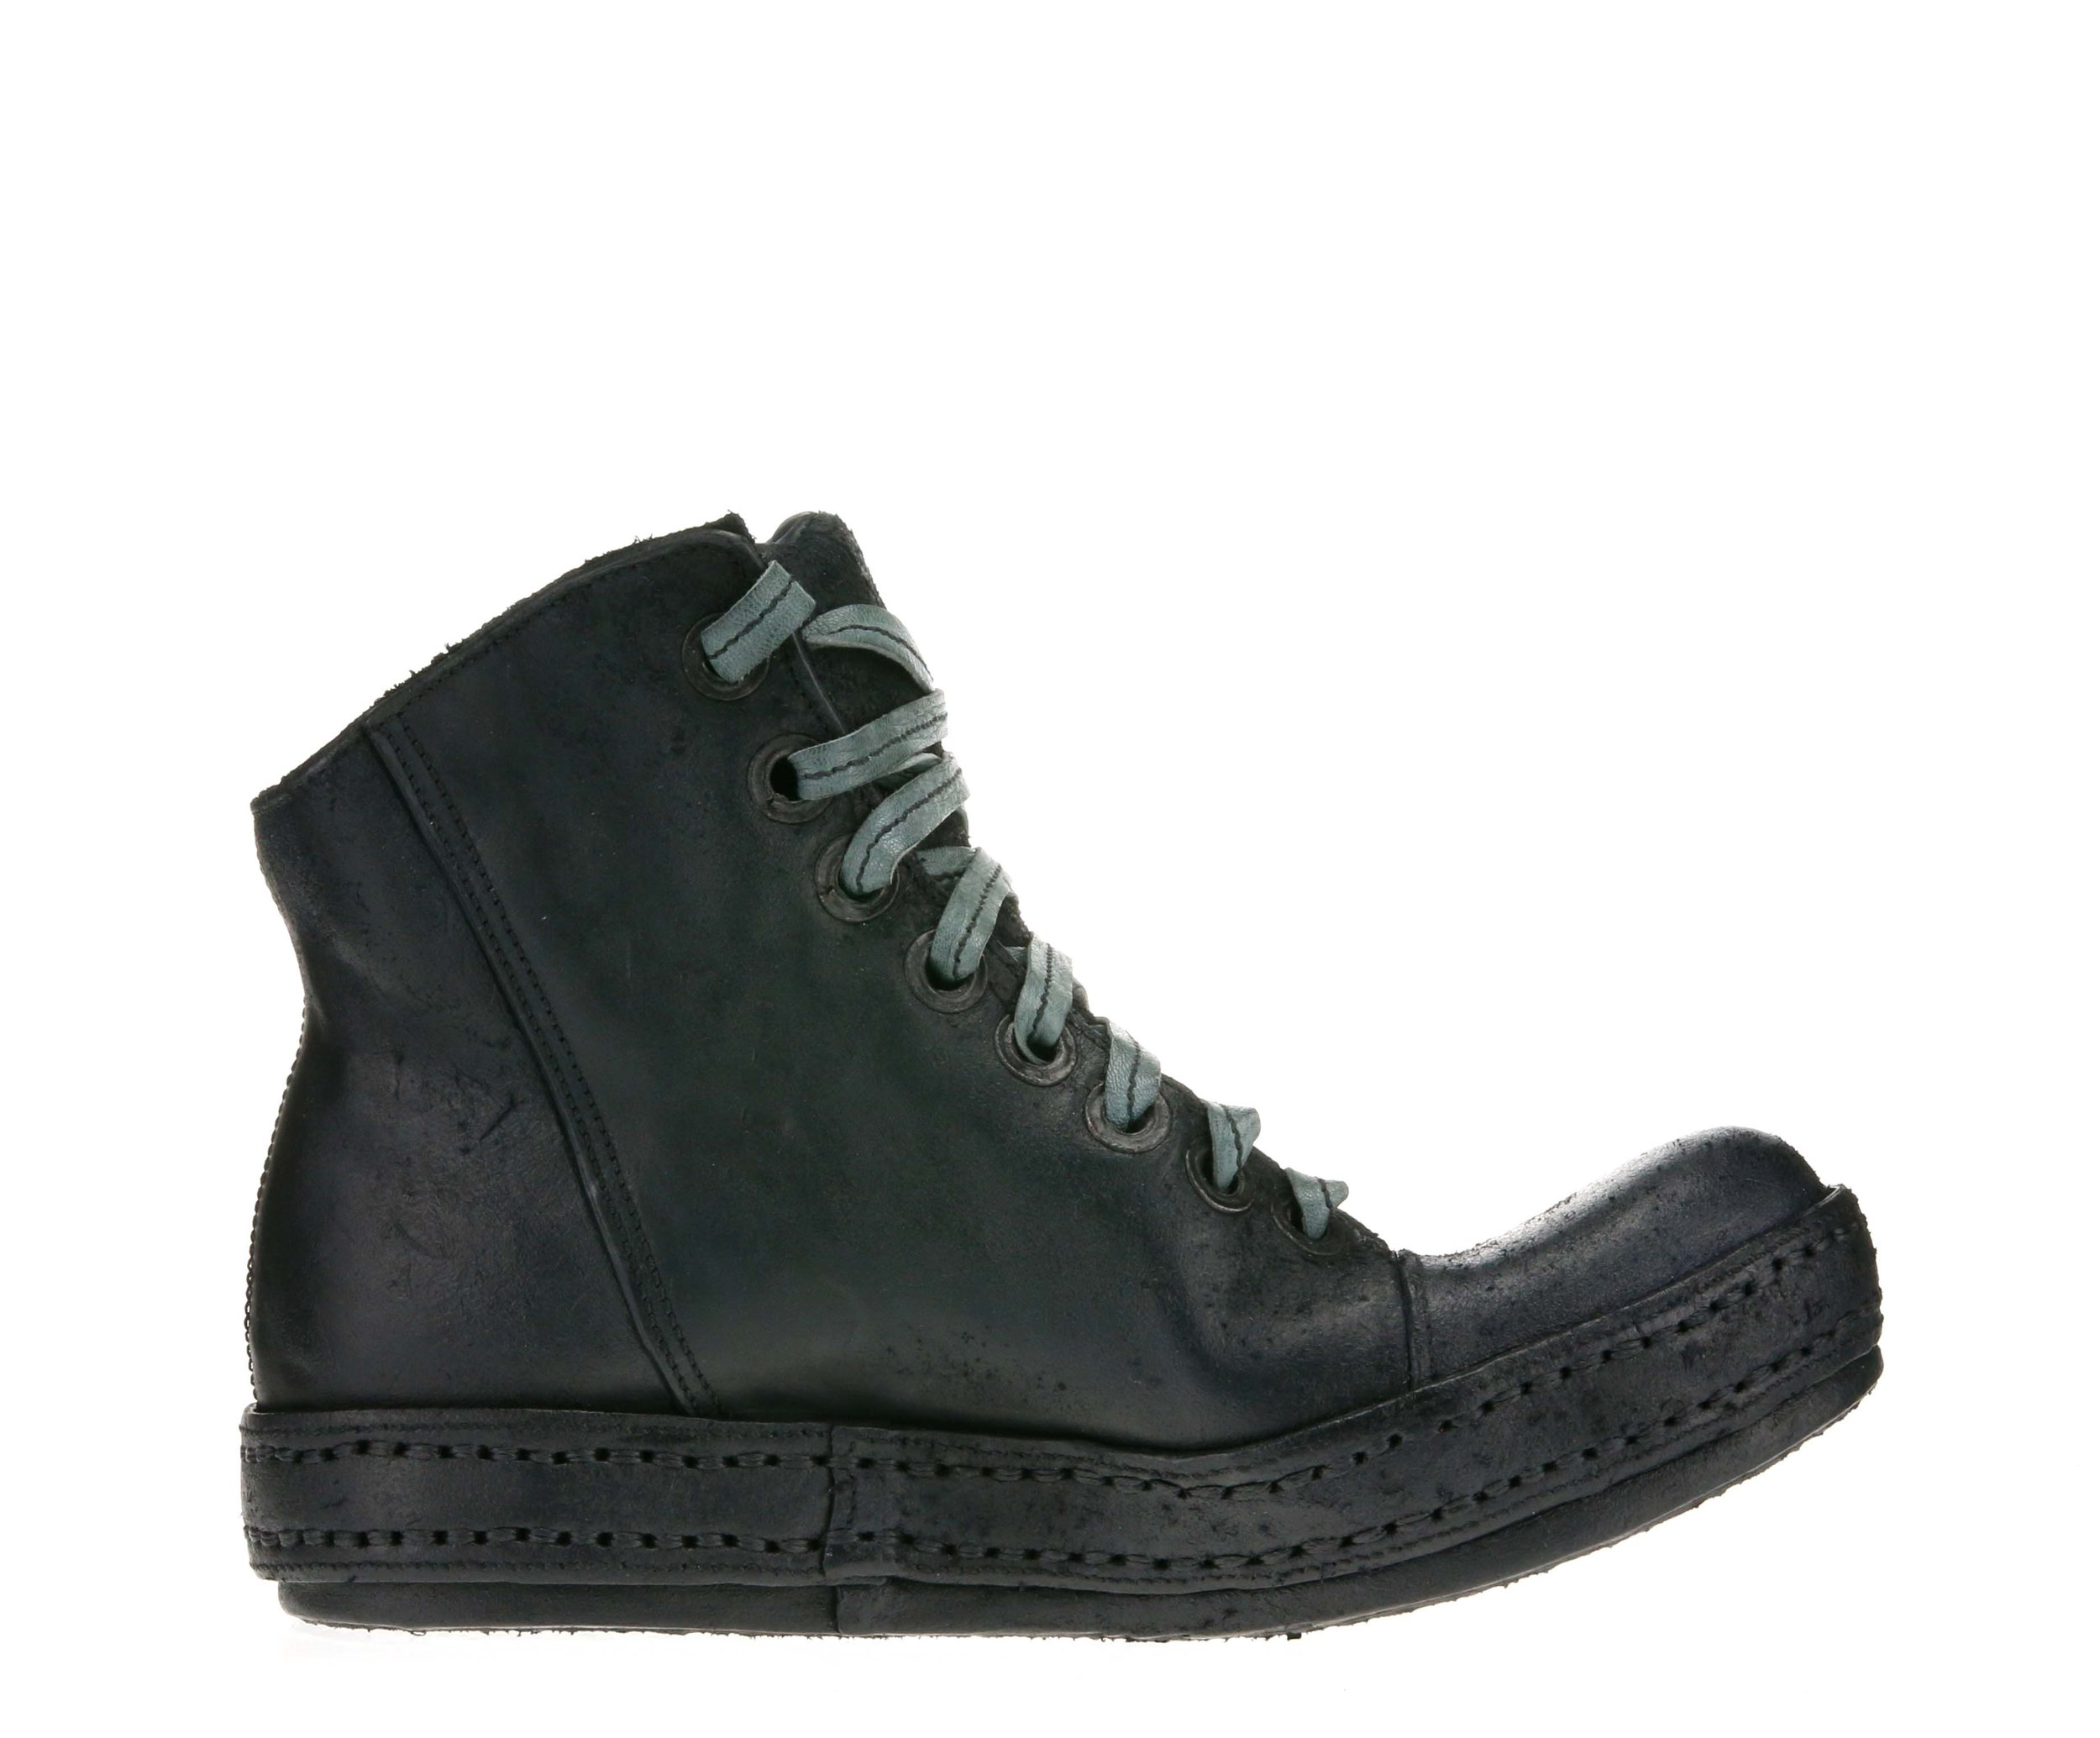 8Hole SP Black Suede Inside.jpg